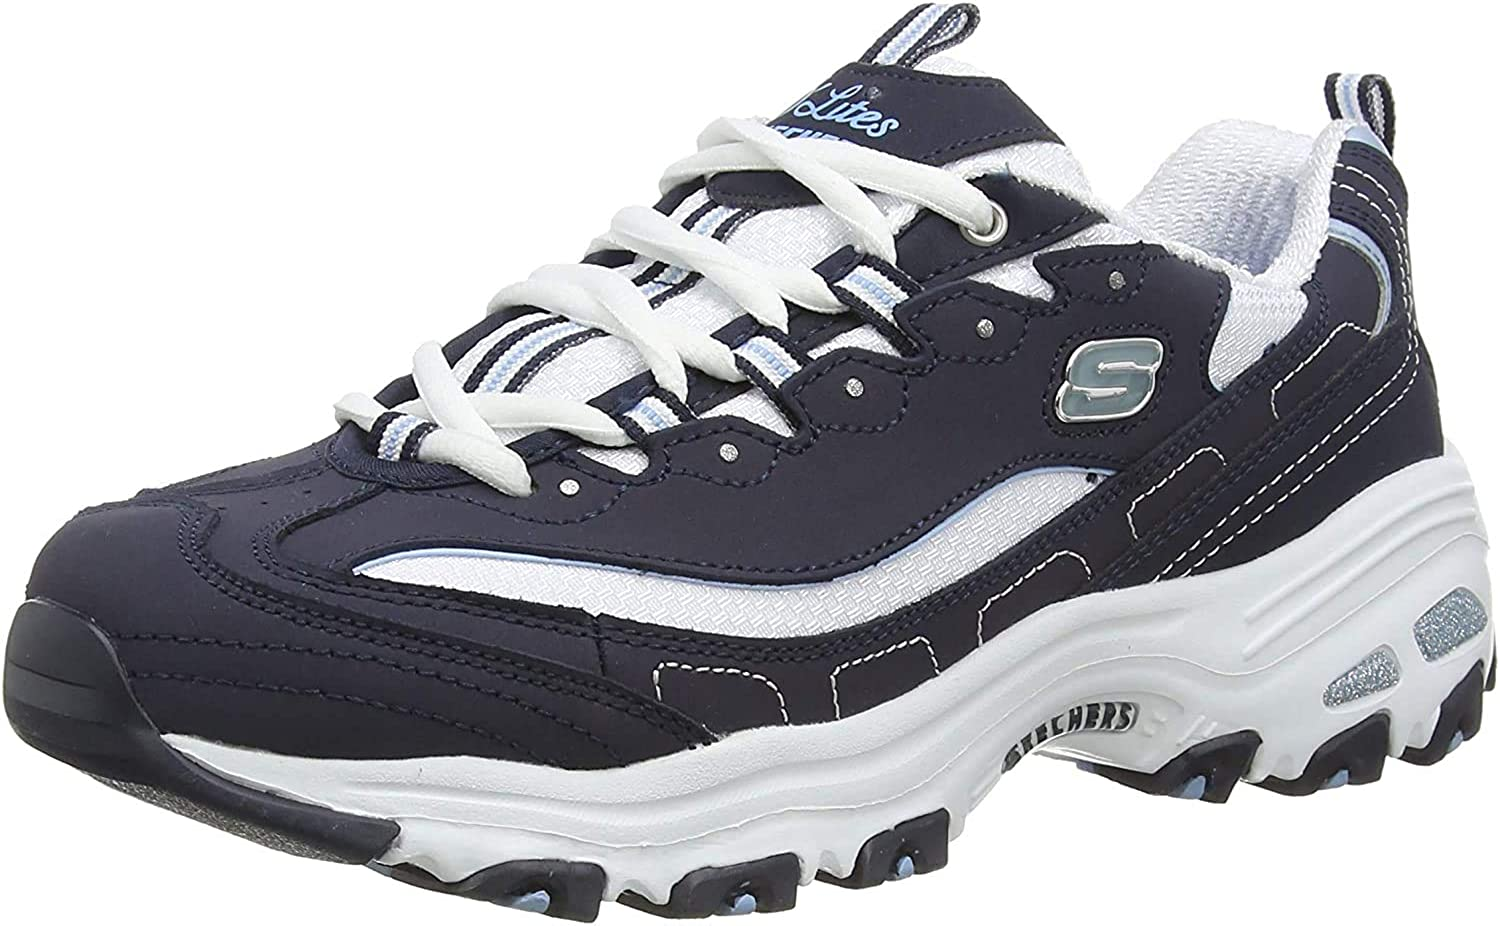 Skechers Sport Women's D'Lites Memory Foam Lace-up Sneaker,Navy/White,5 W US